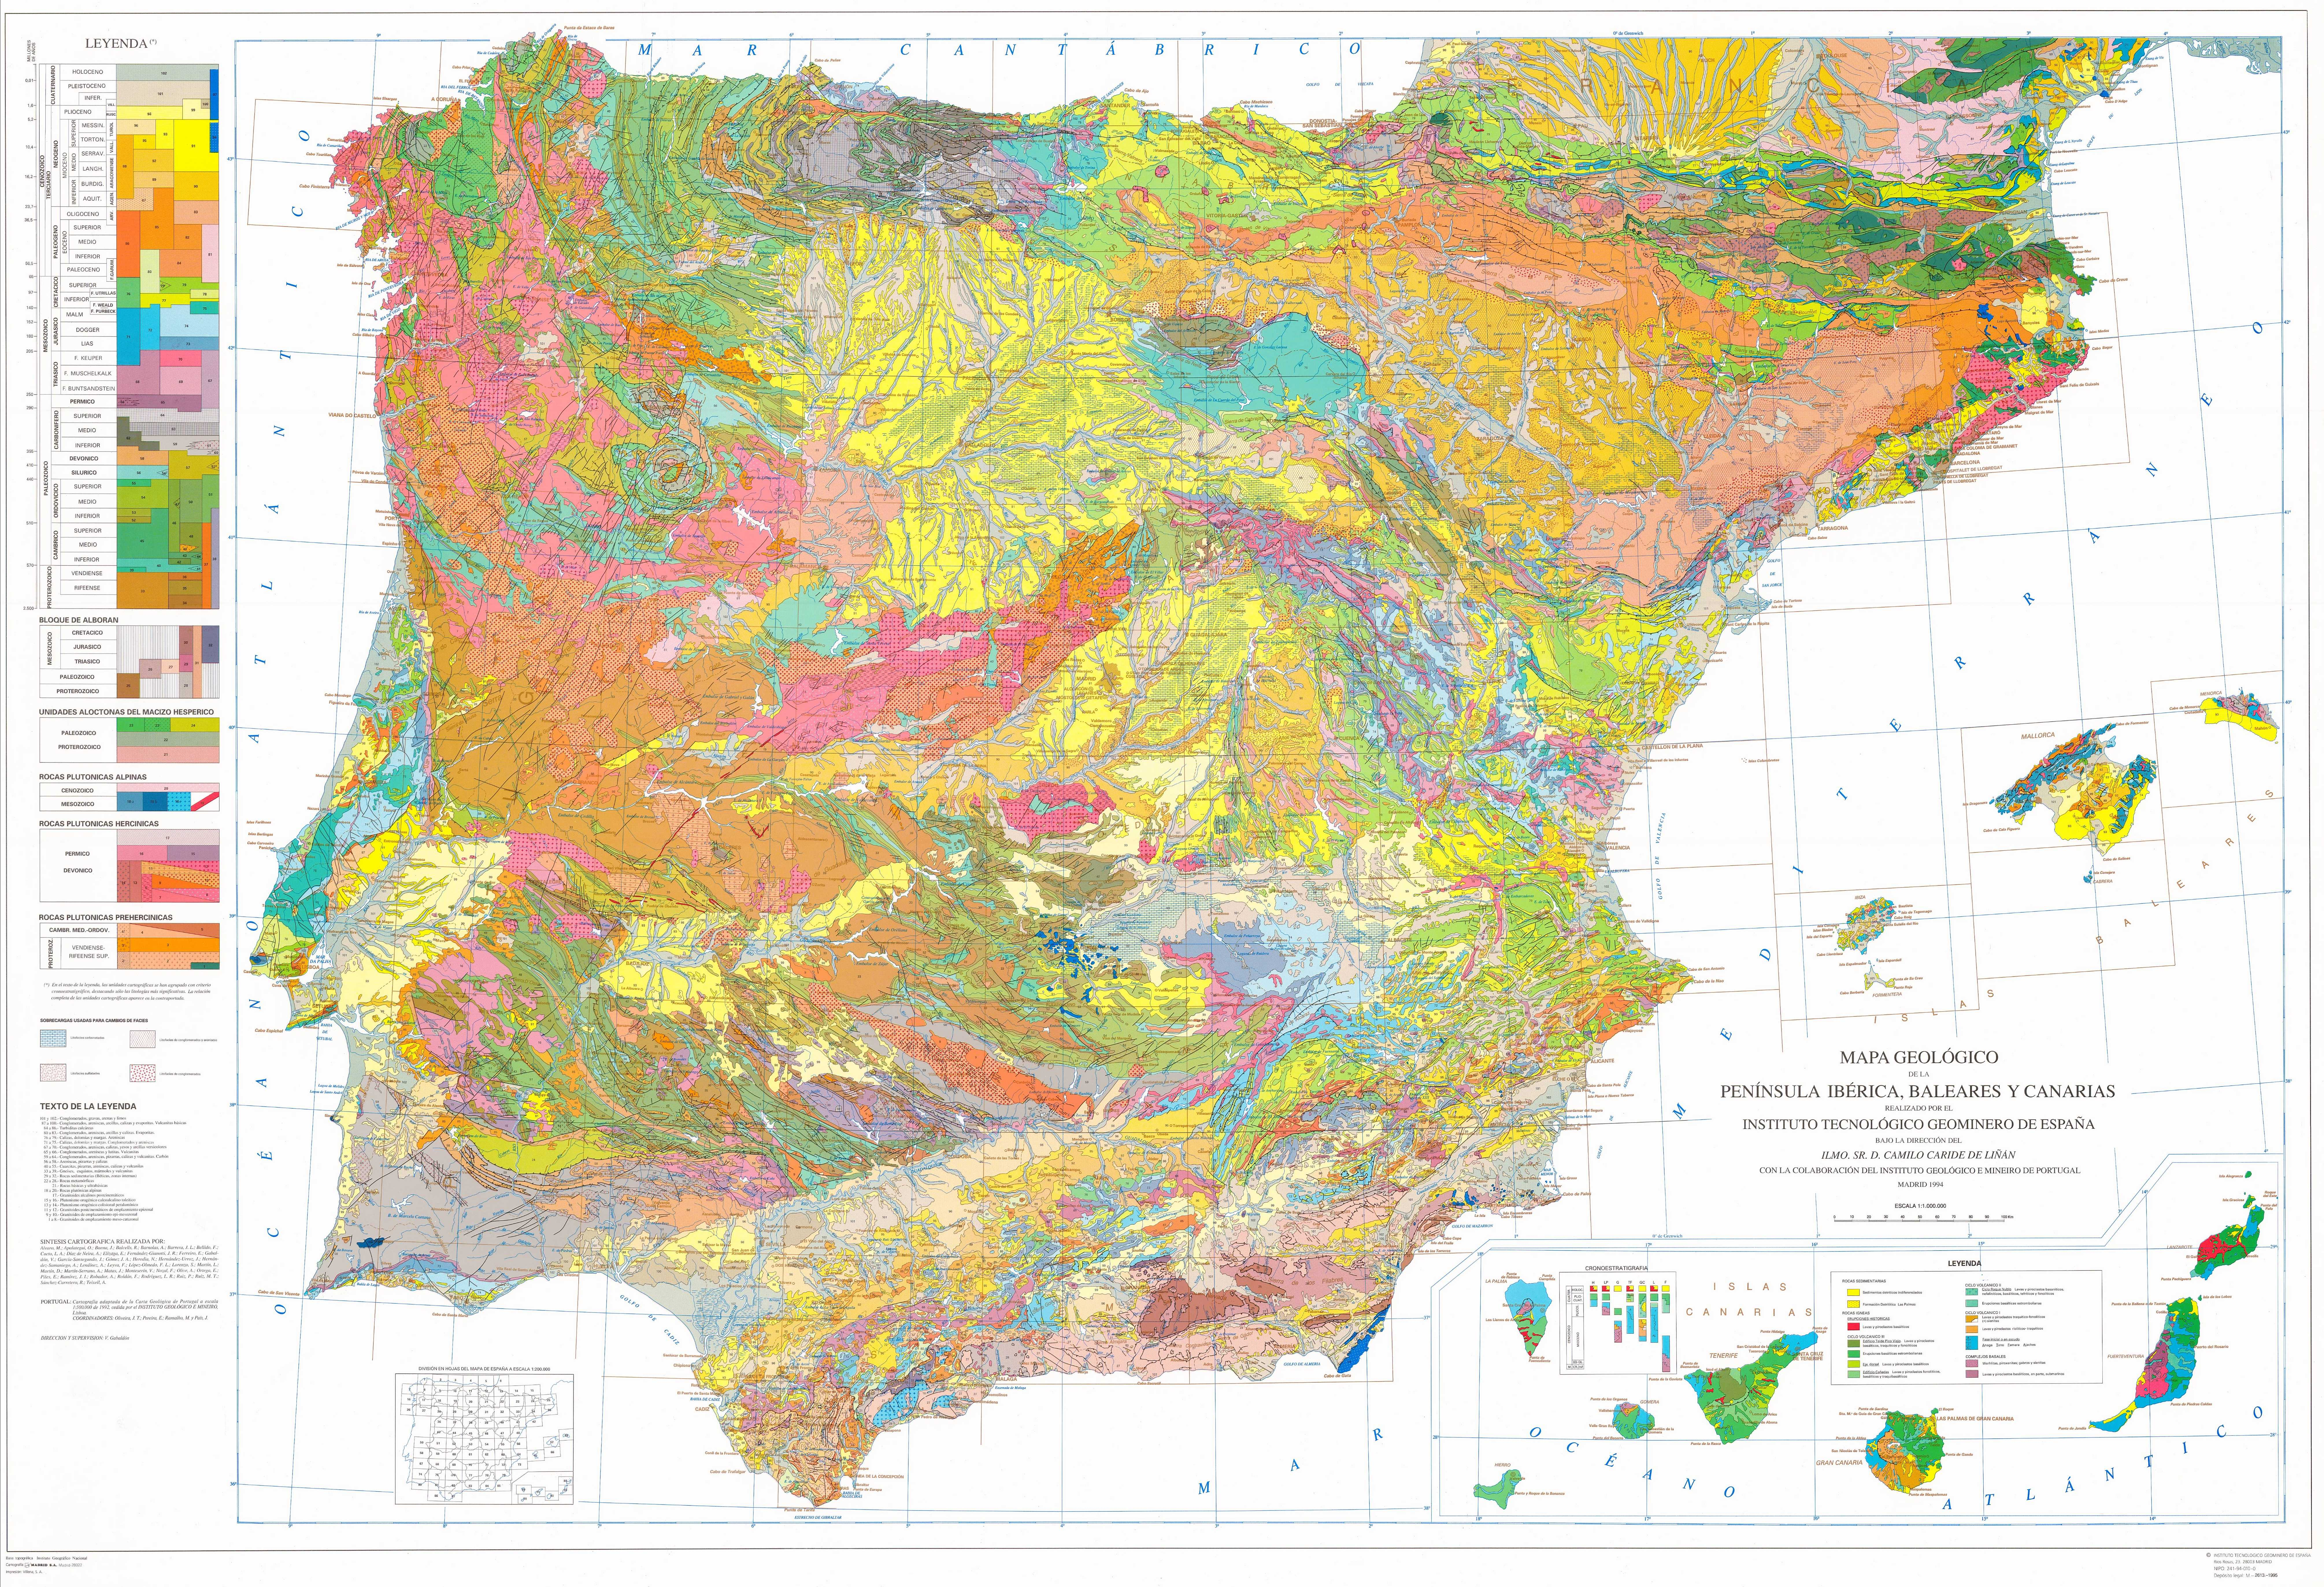 Geological map of the iberian peninsula the balearic islands and distributions gumiabroncs Image collections